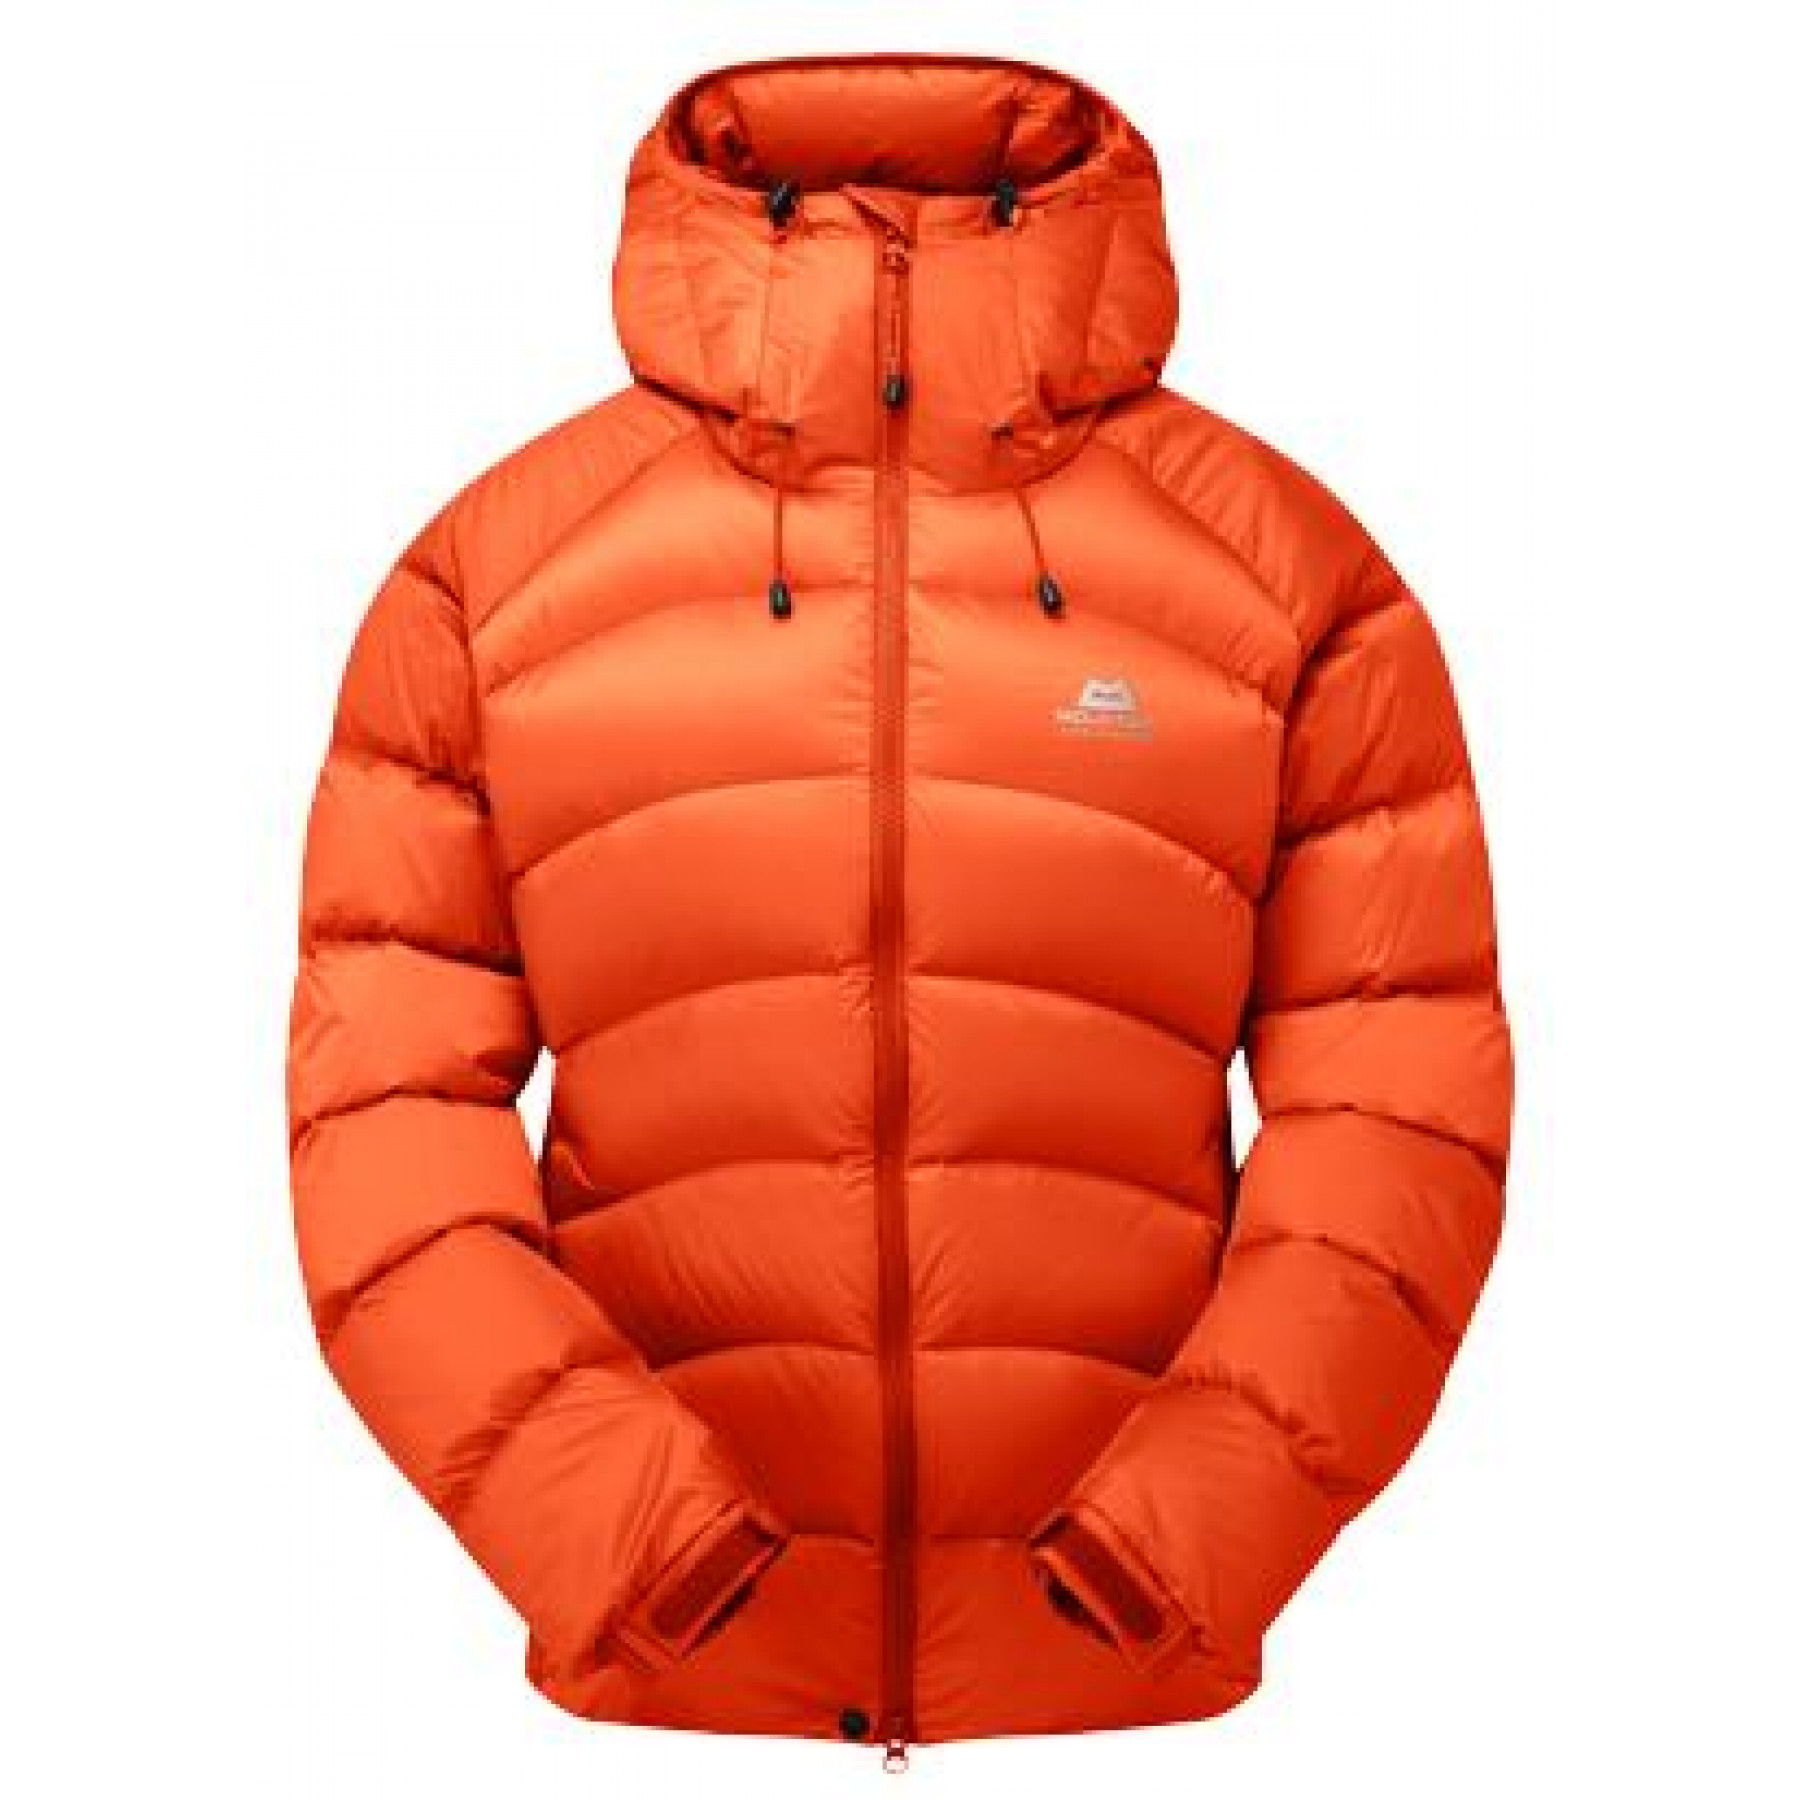 7bdafb25 Mountain Equipment Women's Sigma Jacket Cardinal Orange